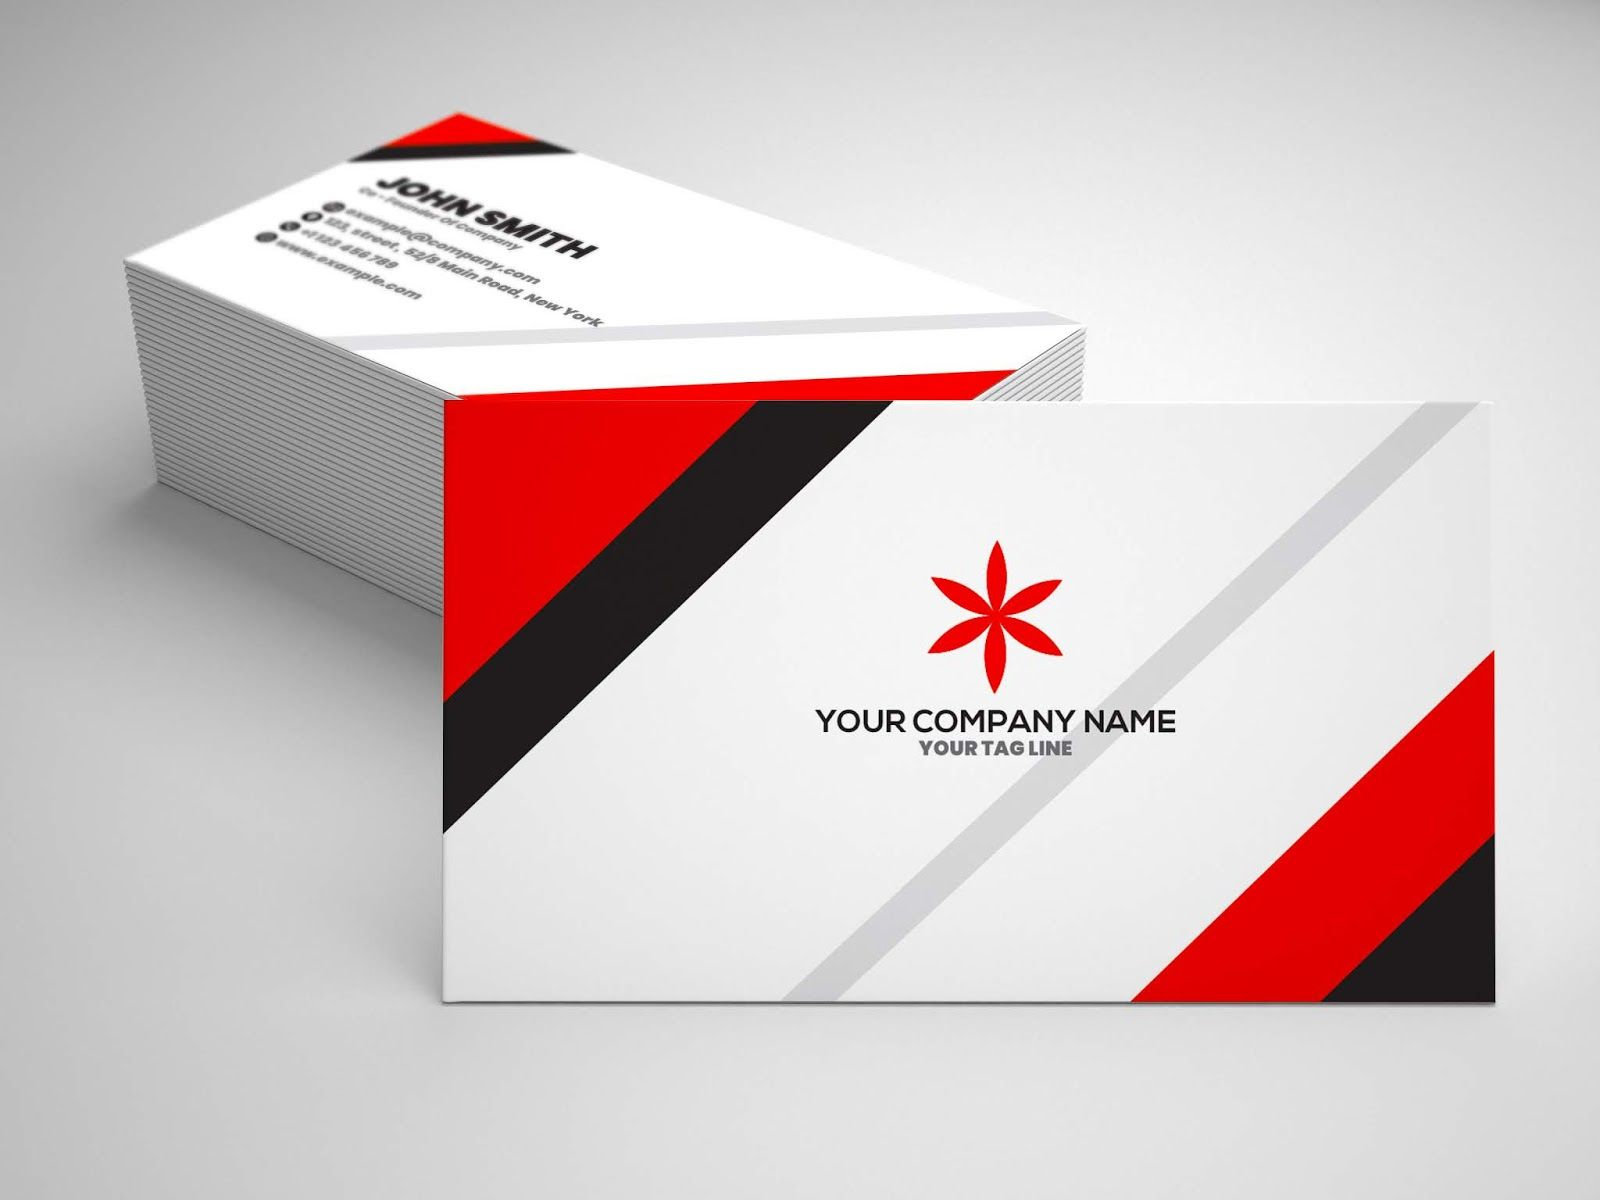 The Glamorous How To Make Double Sided Business Cards In Illustrator With Regard To Doub In 2020 Double Sided Business Cards Business Card Template Make Business Cards